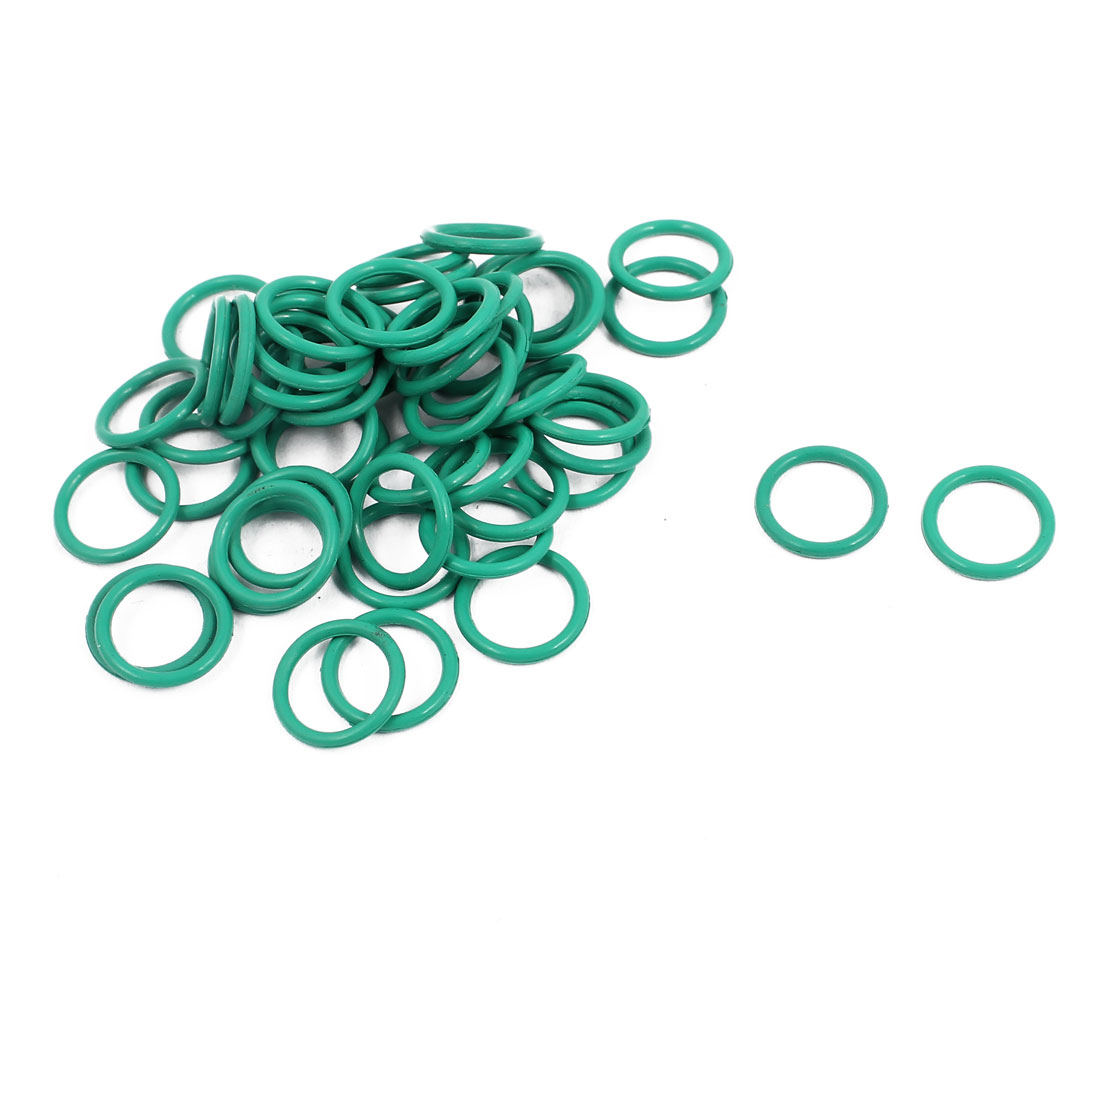 50Pcs 10mm x 1.2mm FKM Nitrile Rubber O-rings Heat Resistant Sealing Ring Grommets Green